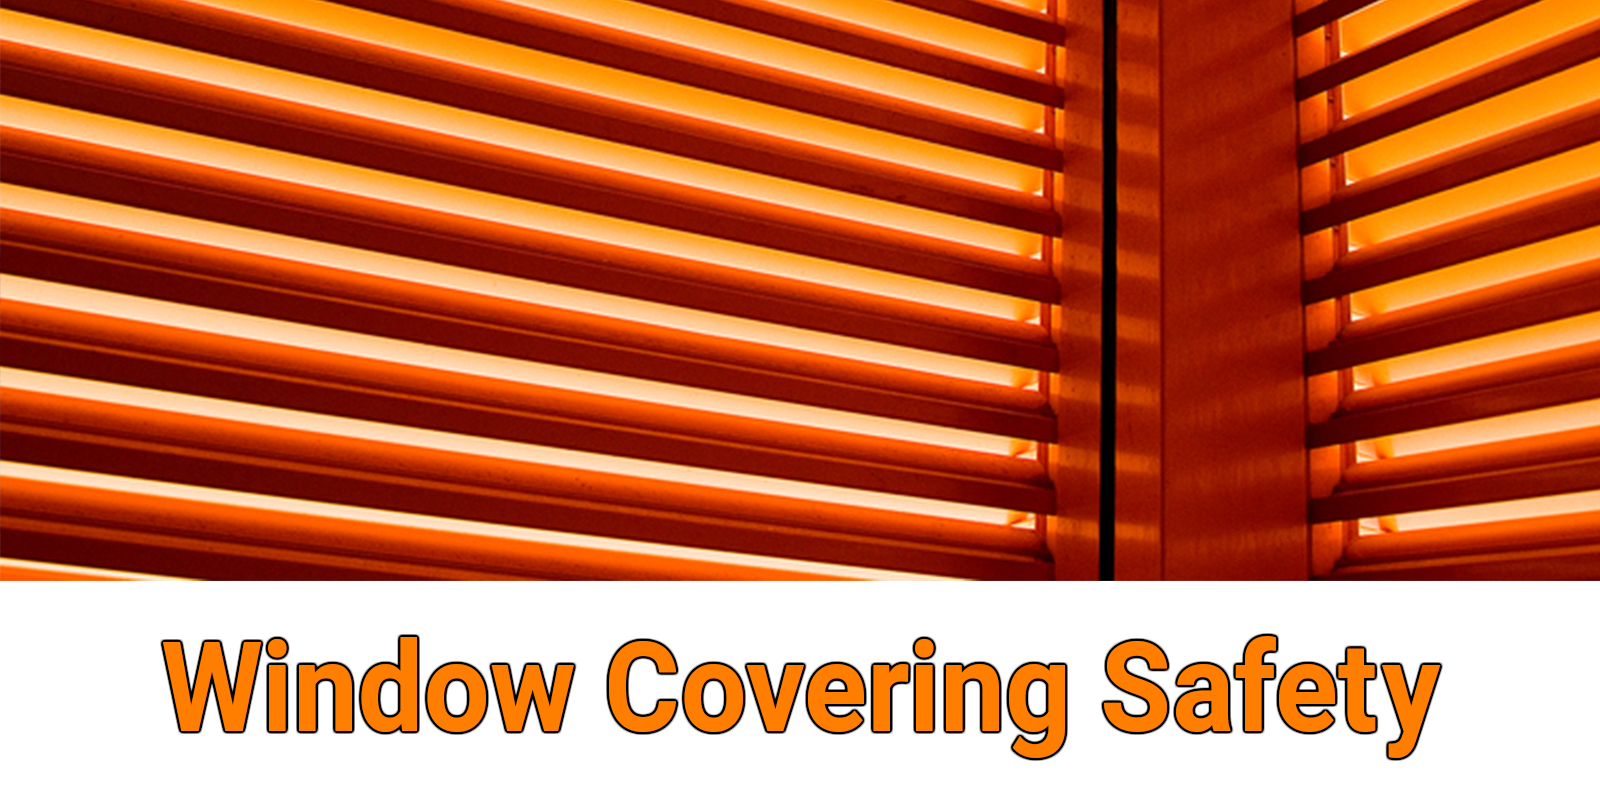 Window Covering Cords Cpscgov